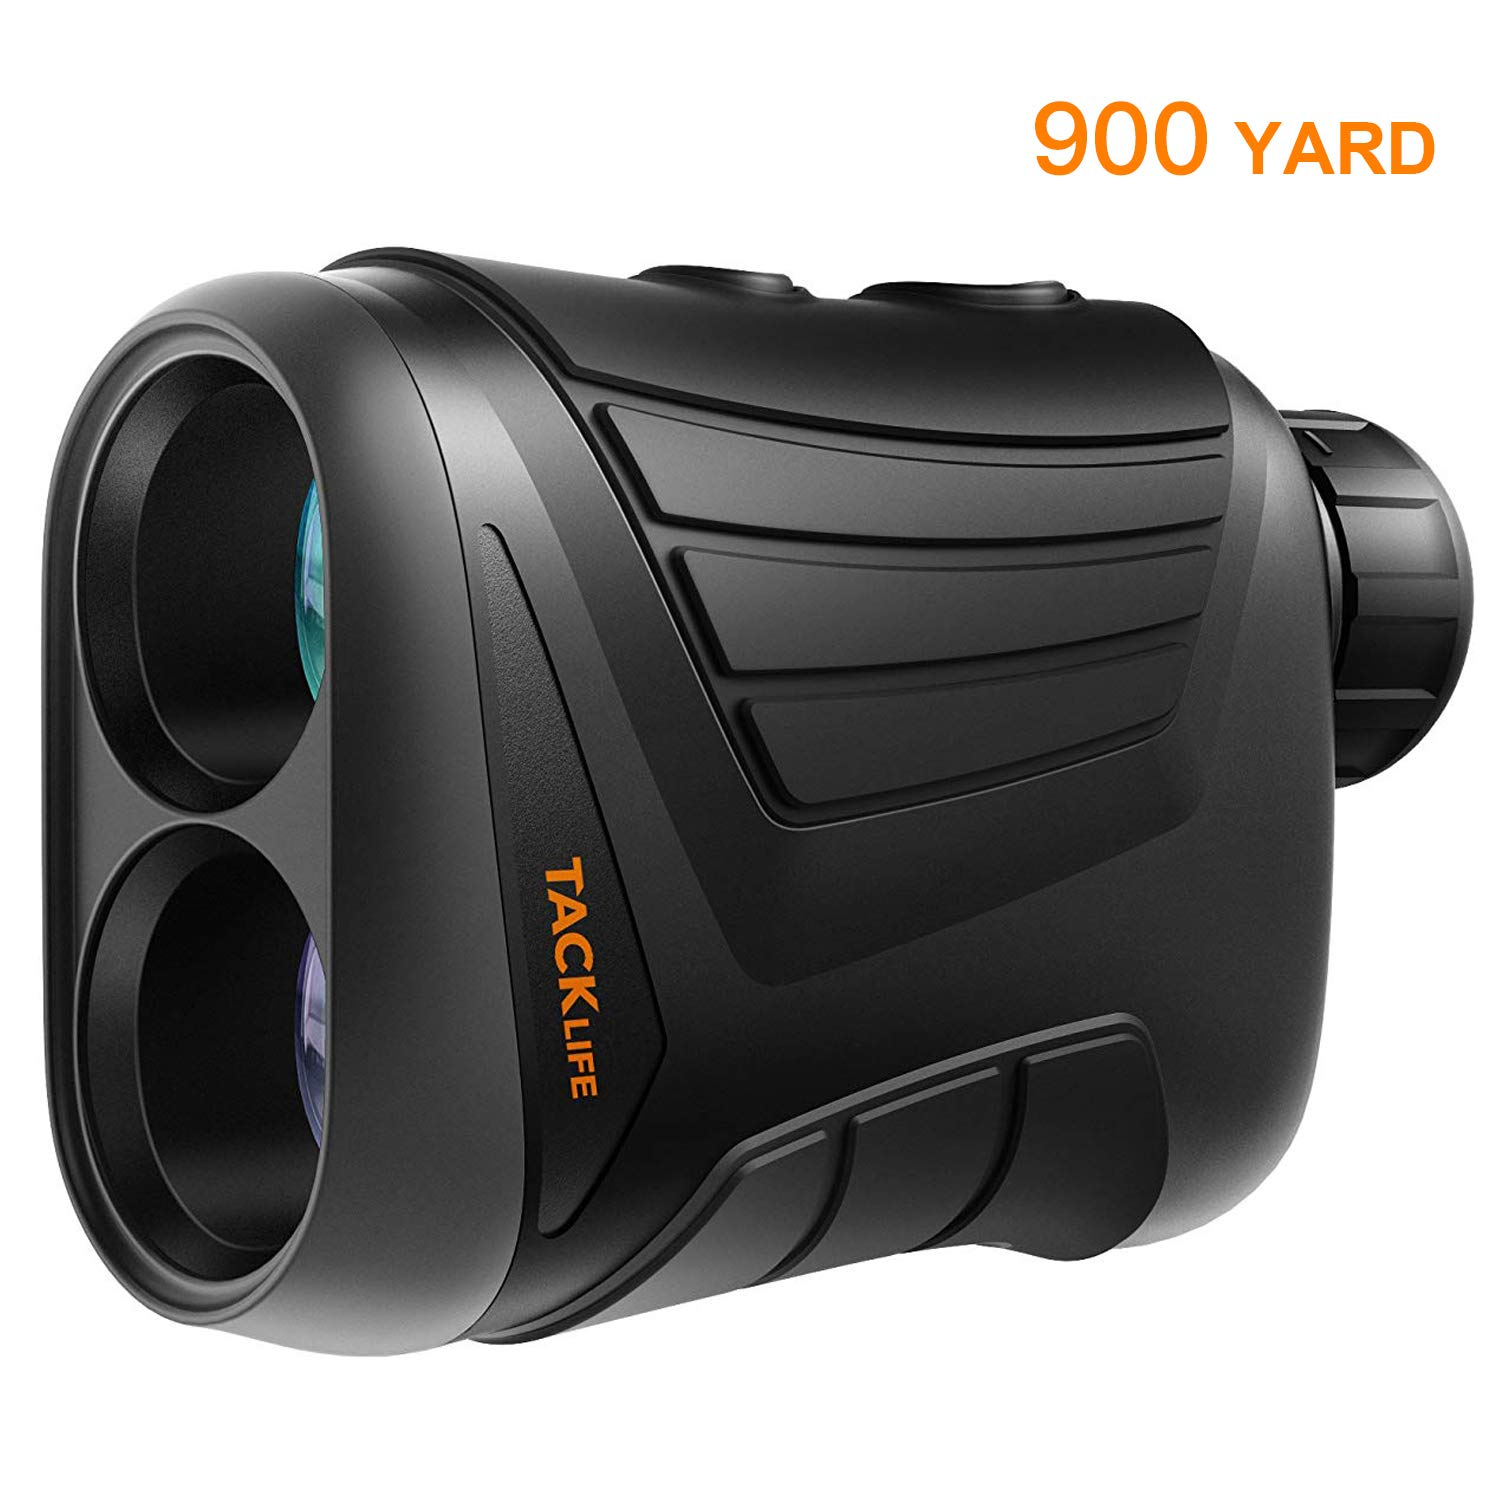 Laser Rangefinder 900 Yards- Tacklife 7X Range Finder with Pinsensor, Range/Speed/Scan Mode for Golf, Hunting, Boating, Hiking, USB Charging Cable and Wrist Strap Included - MLR01